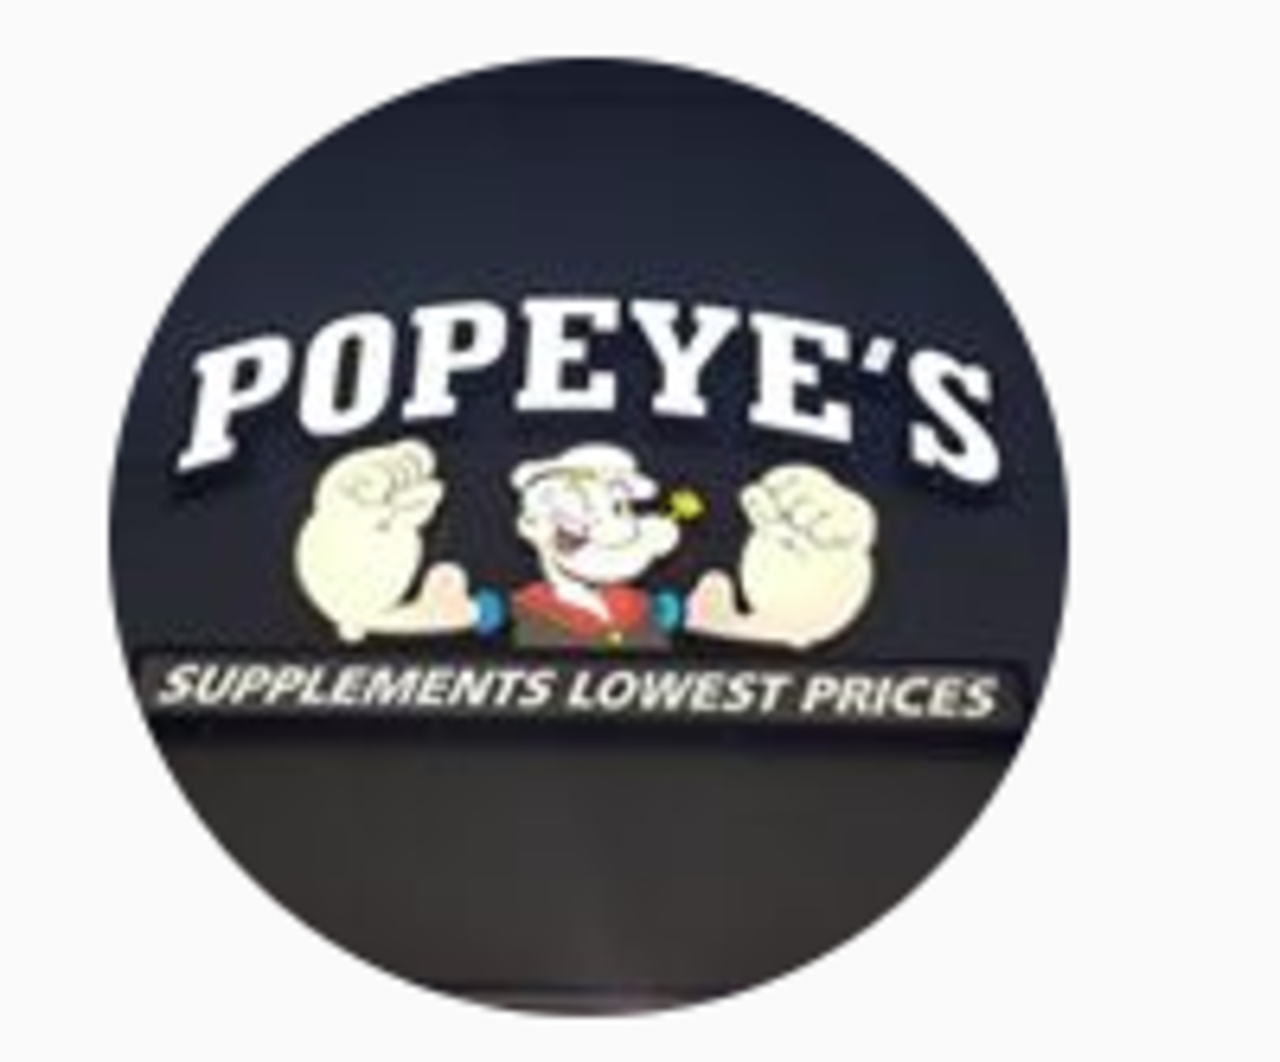 Popeye's Supplement - Shop Local - Essential Business in Toronto ON